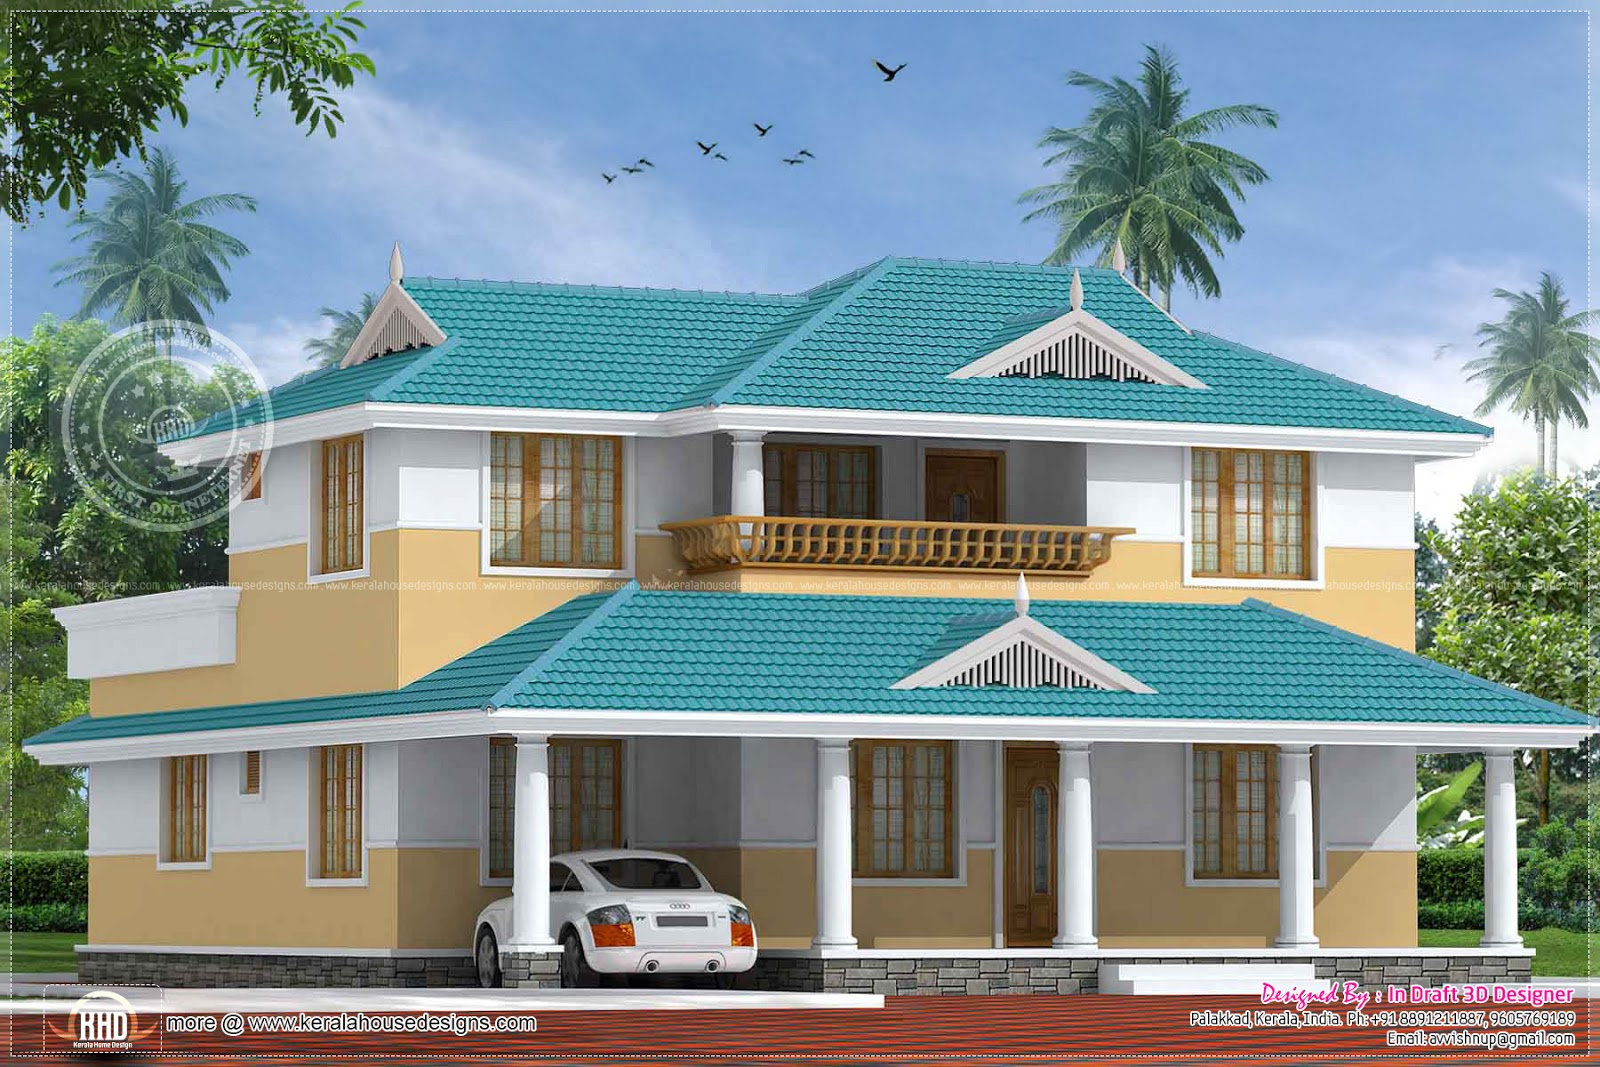 5 bedroom beautiful kerala home in 2324 kerala home design and floor plans - Kerala beautiful house ...